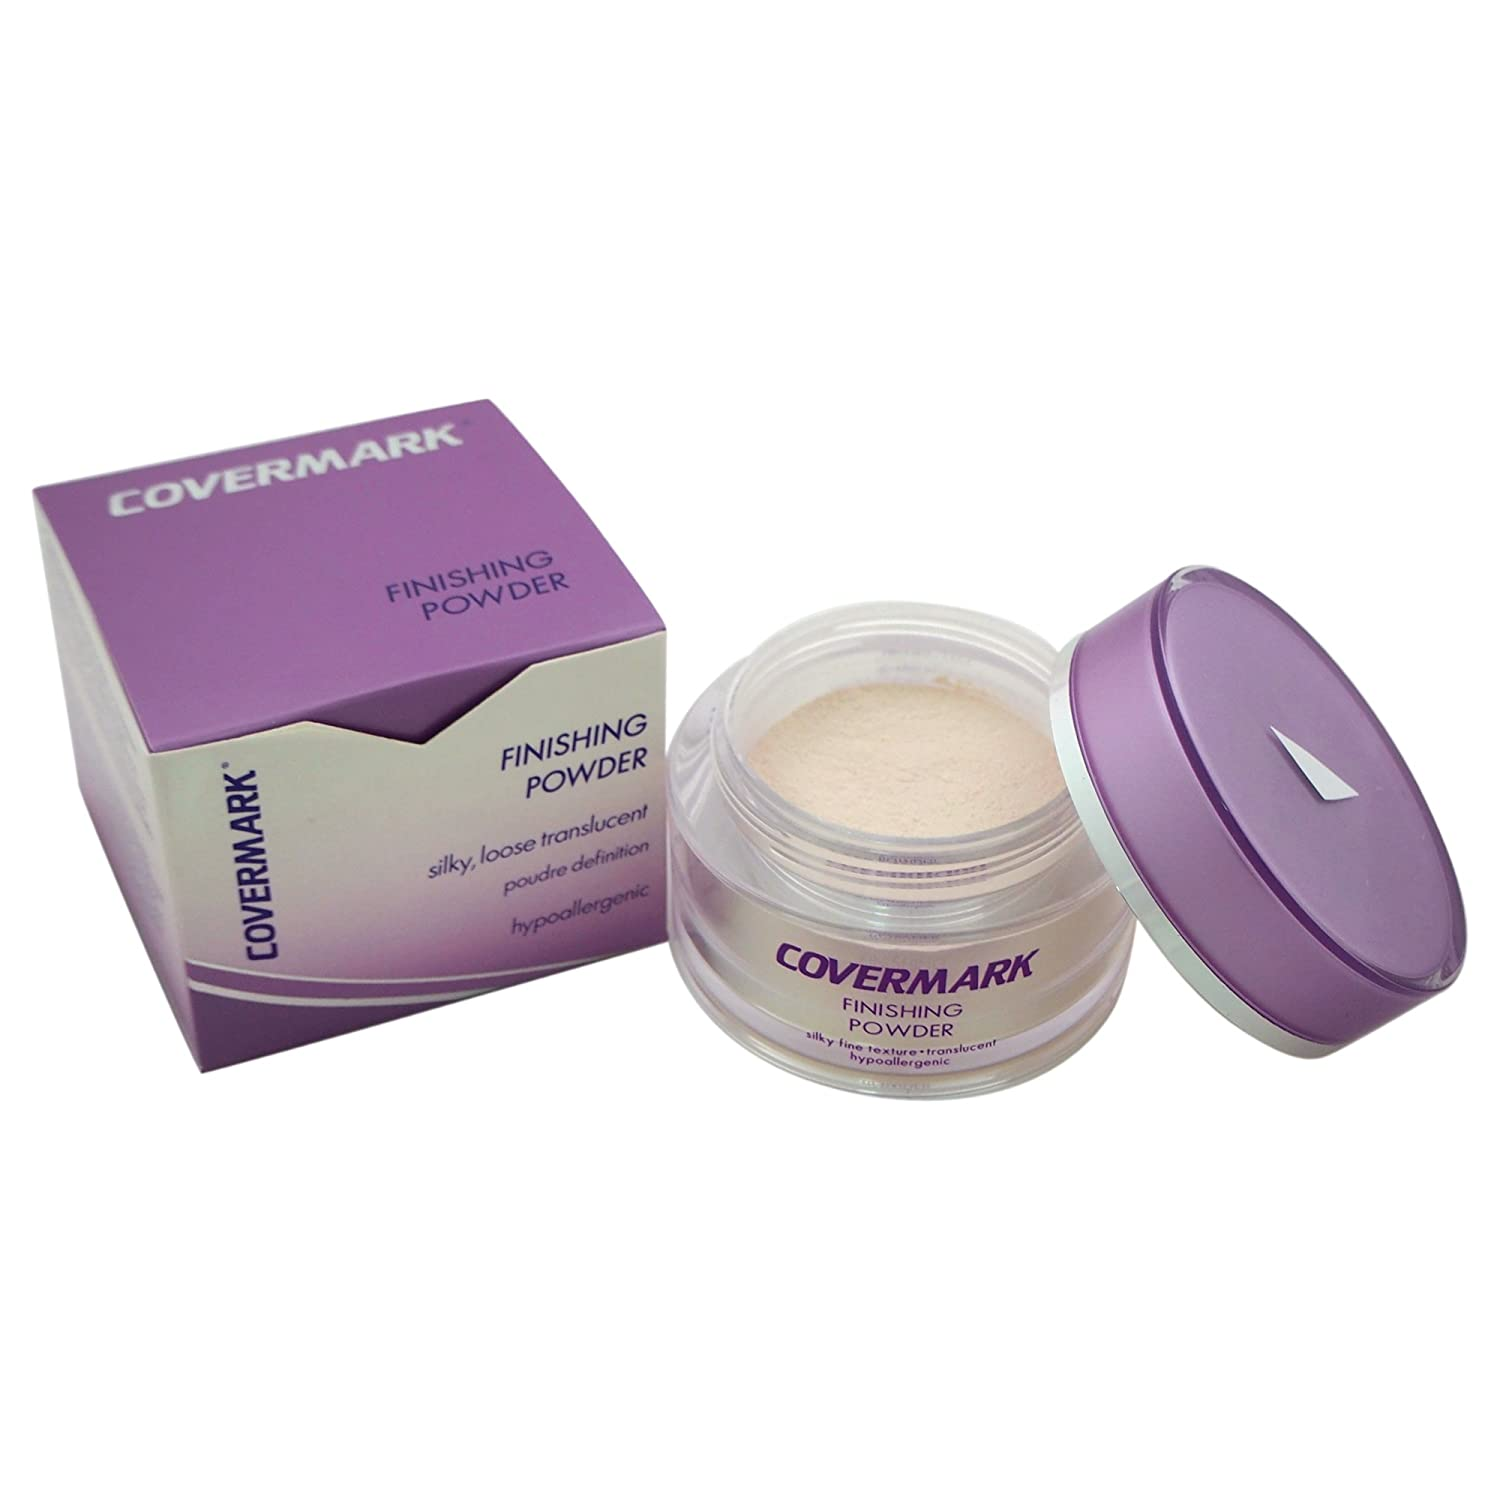 Covermark Finishing Powder Poudre Définition Translucide 25 g Face Powders